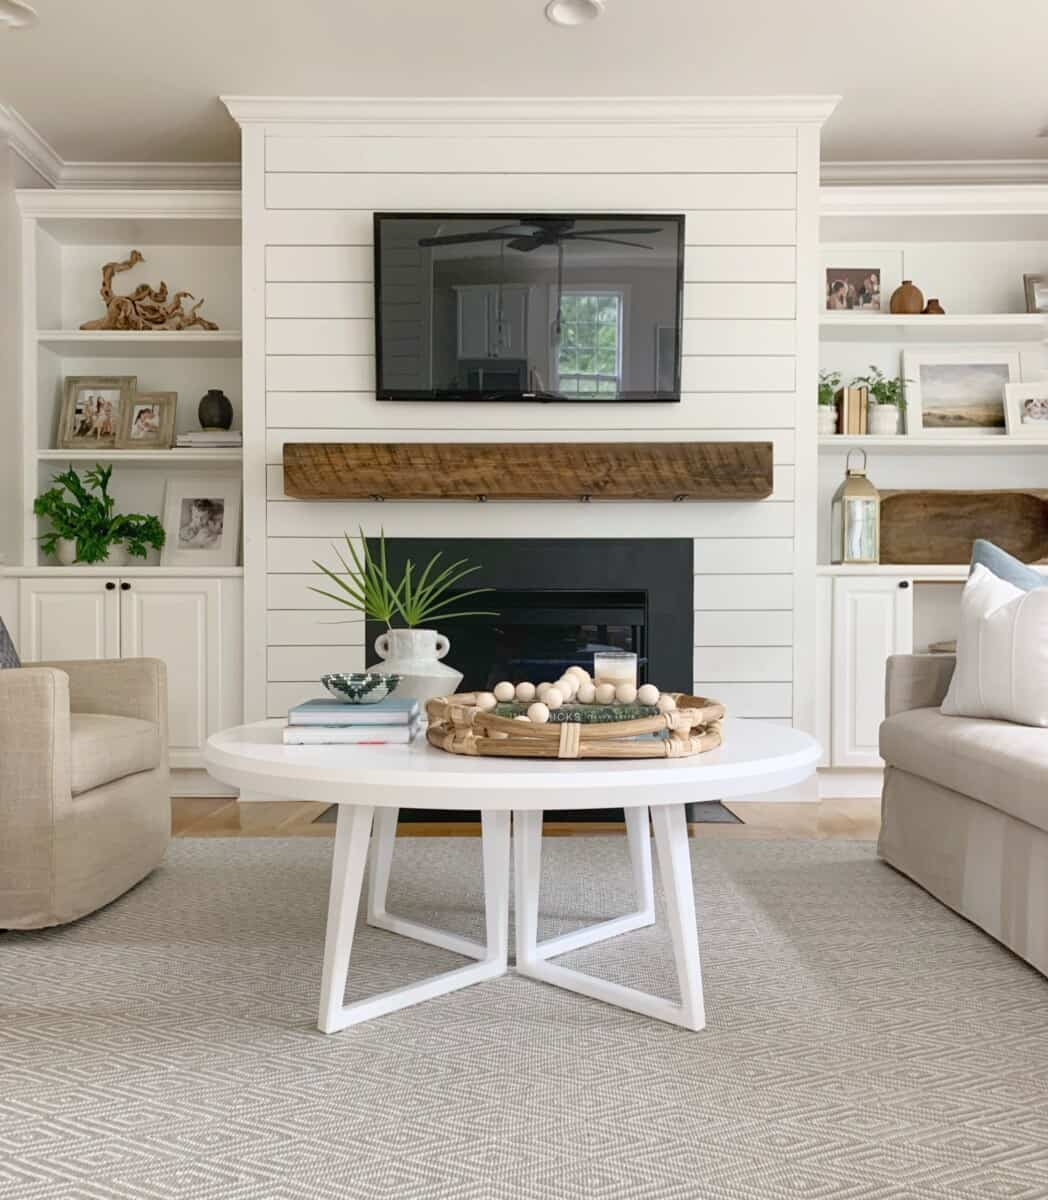 Coastal inspired living room - The Coastal Oak Blog.  #coastalhome #coastalliving #spindlechair #spoolchair #accentchair #fusionpaint #fusion #mineralpaint #serenaandlily #birchlane #livingroomfurniture #livingroomchairs